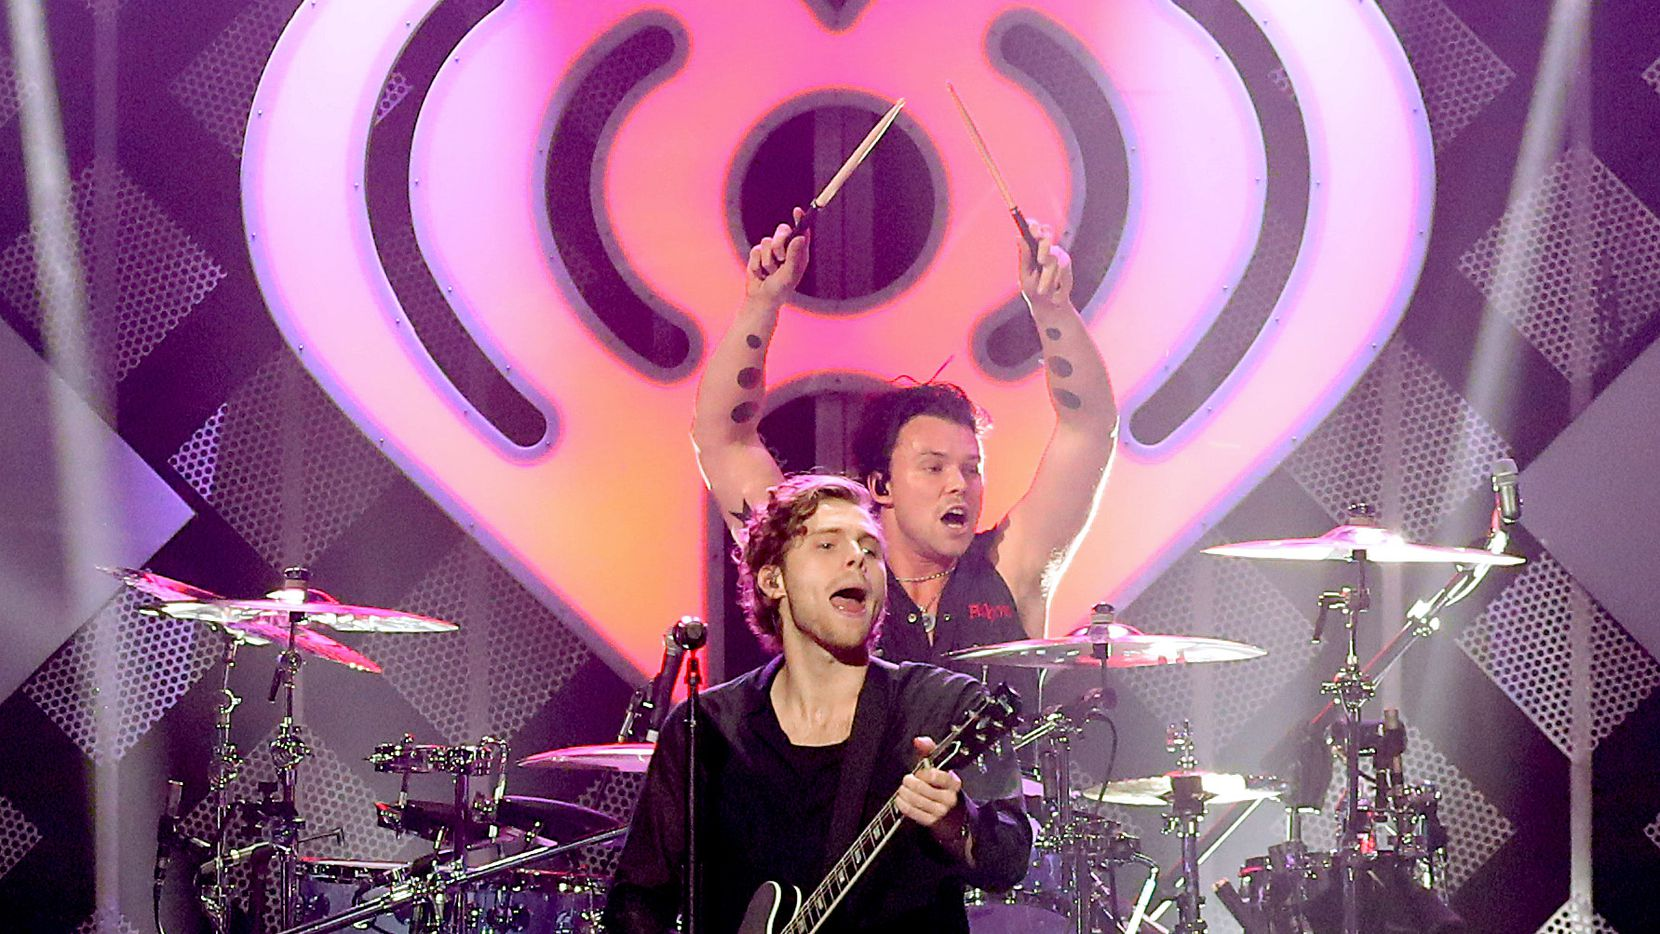 Ashton Irwin and Luke Hemmings of 5 Seconds of Summer performs onstage during KISS 108's iHeartRadio Jingle Ball 2019 on Dec. 15, 2019, in Boston, Mass.